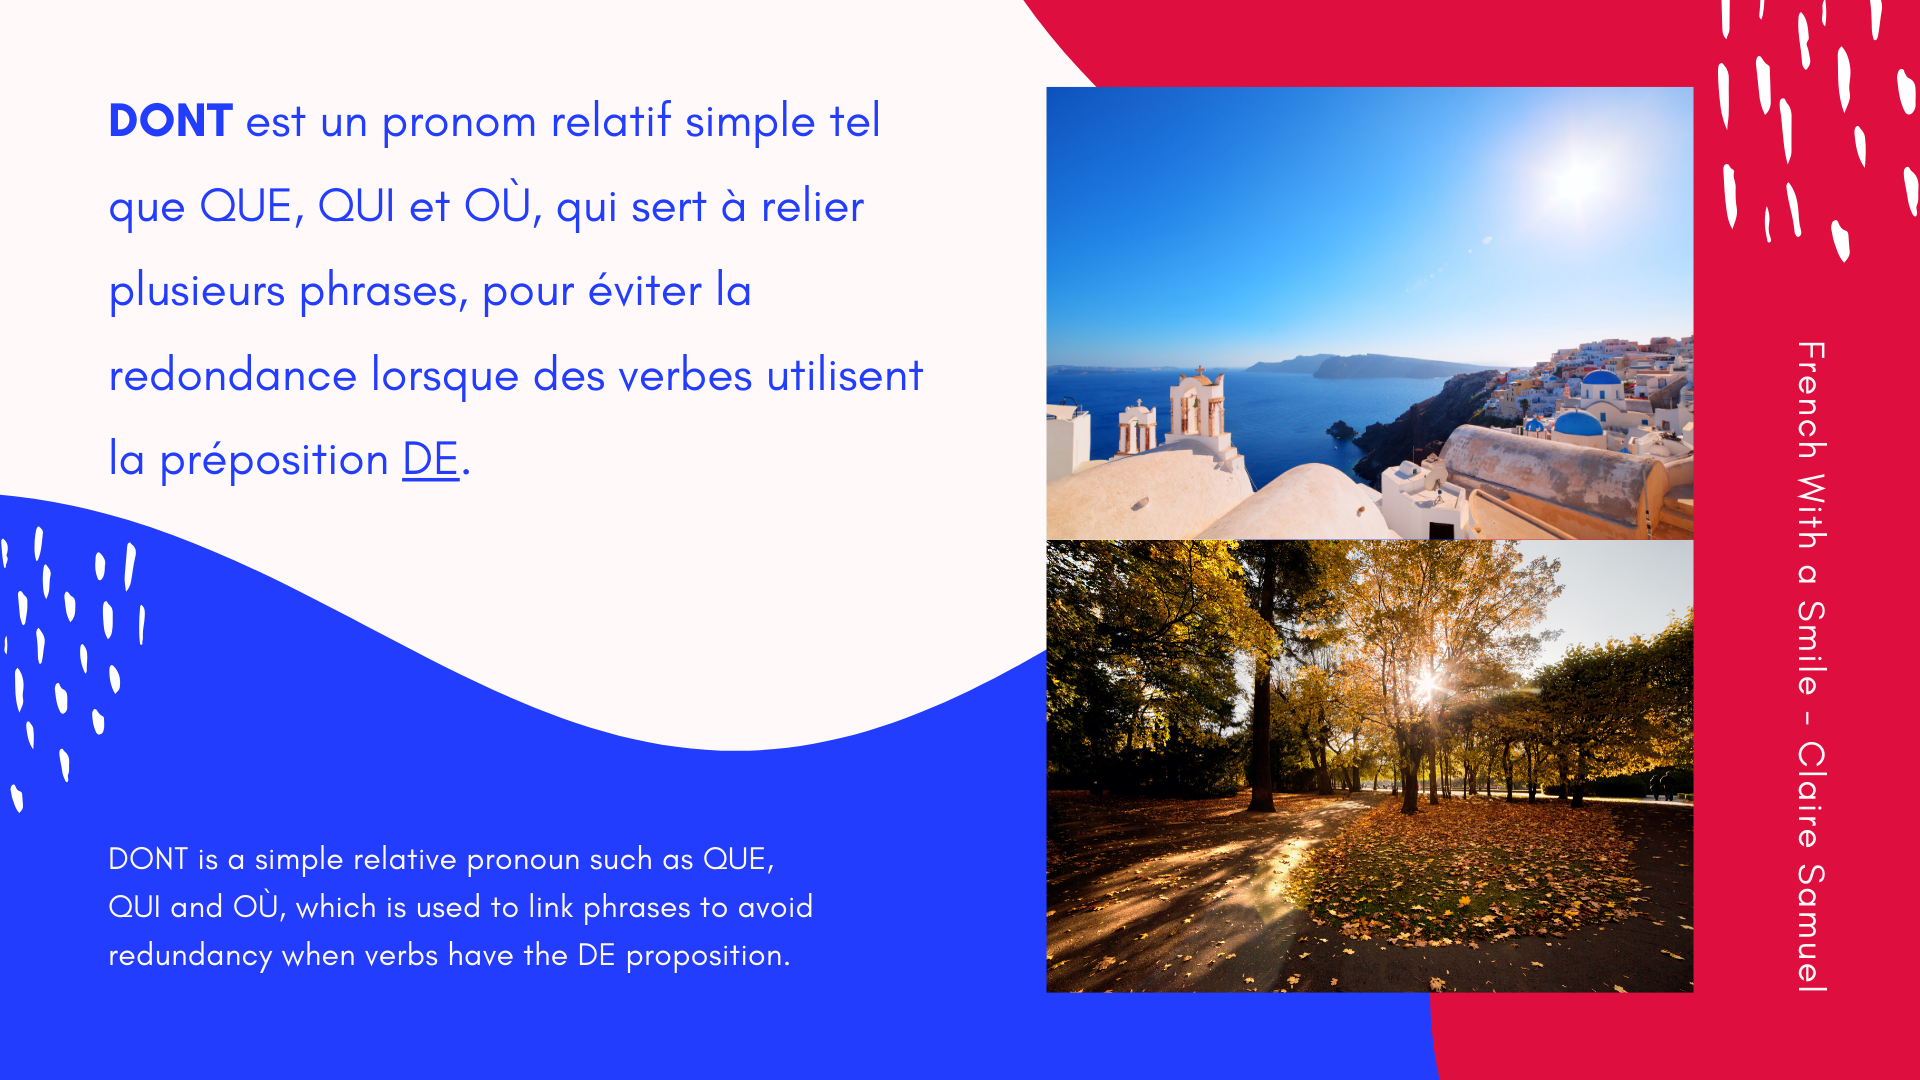 Advanced #21 How to use French relative pronoun DONT in whole sentences to practice and repeat